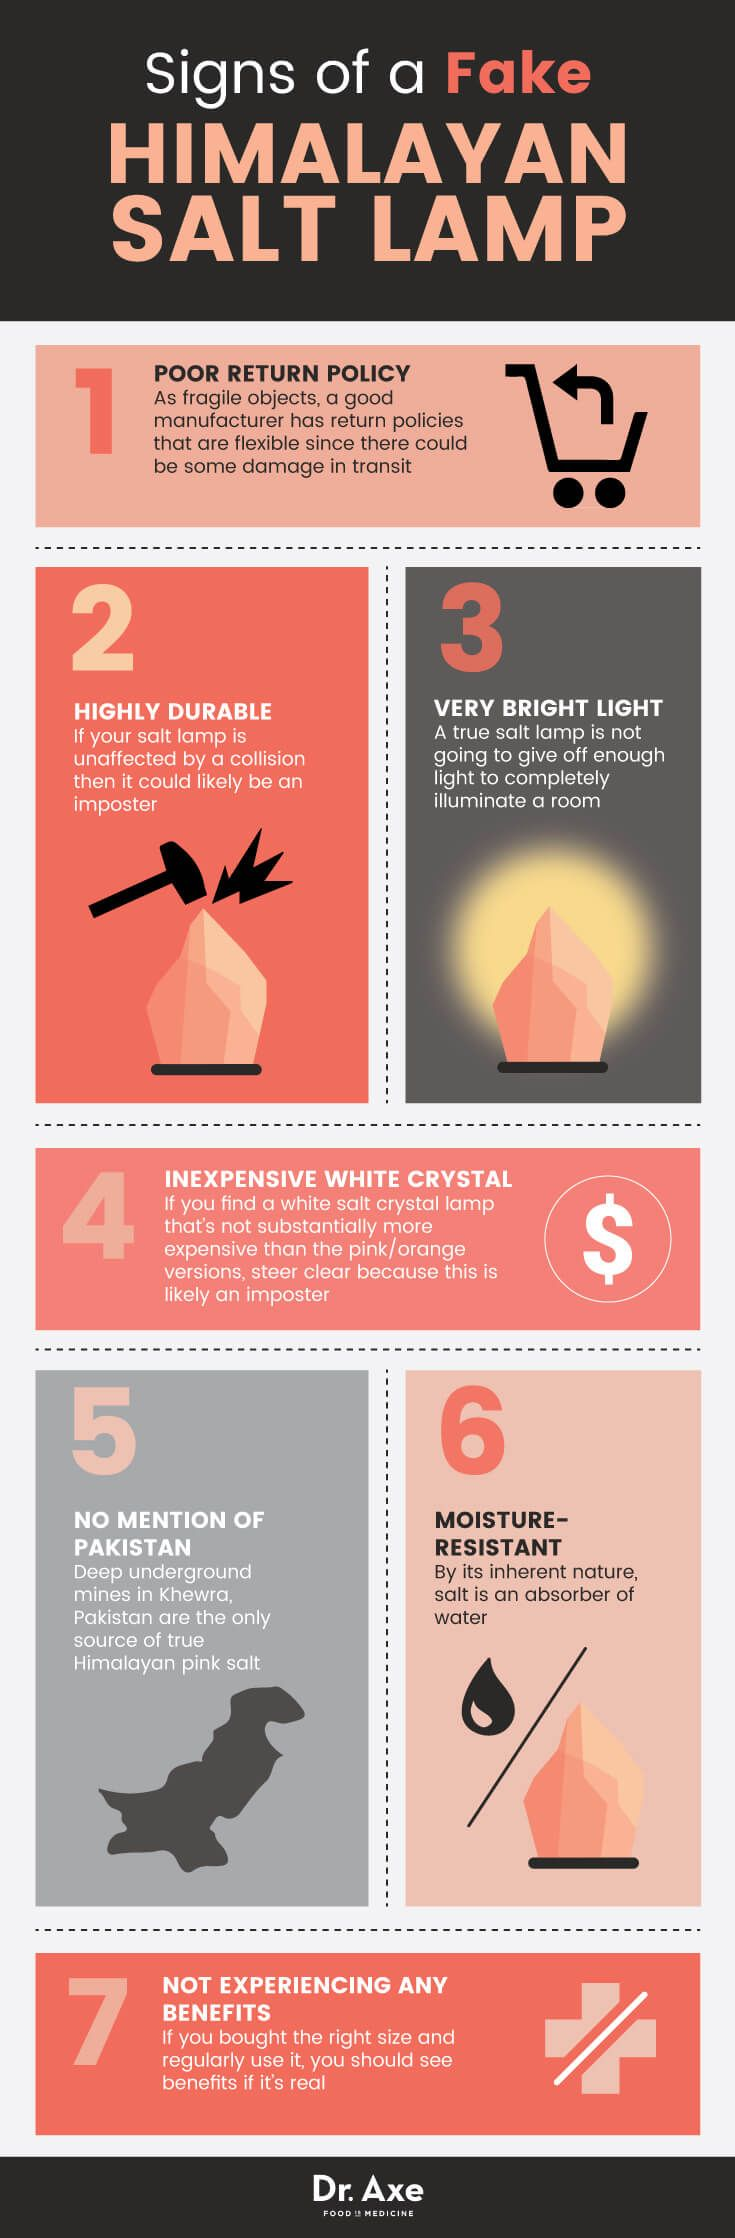 Salt Rock Lamp Benefits Endearing 64 Best Has Anyone Tried A Himalayan Salt Lamp Imagesvanessa Design Decoration